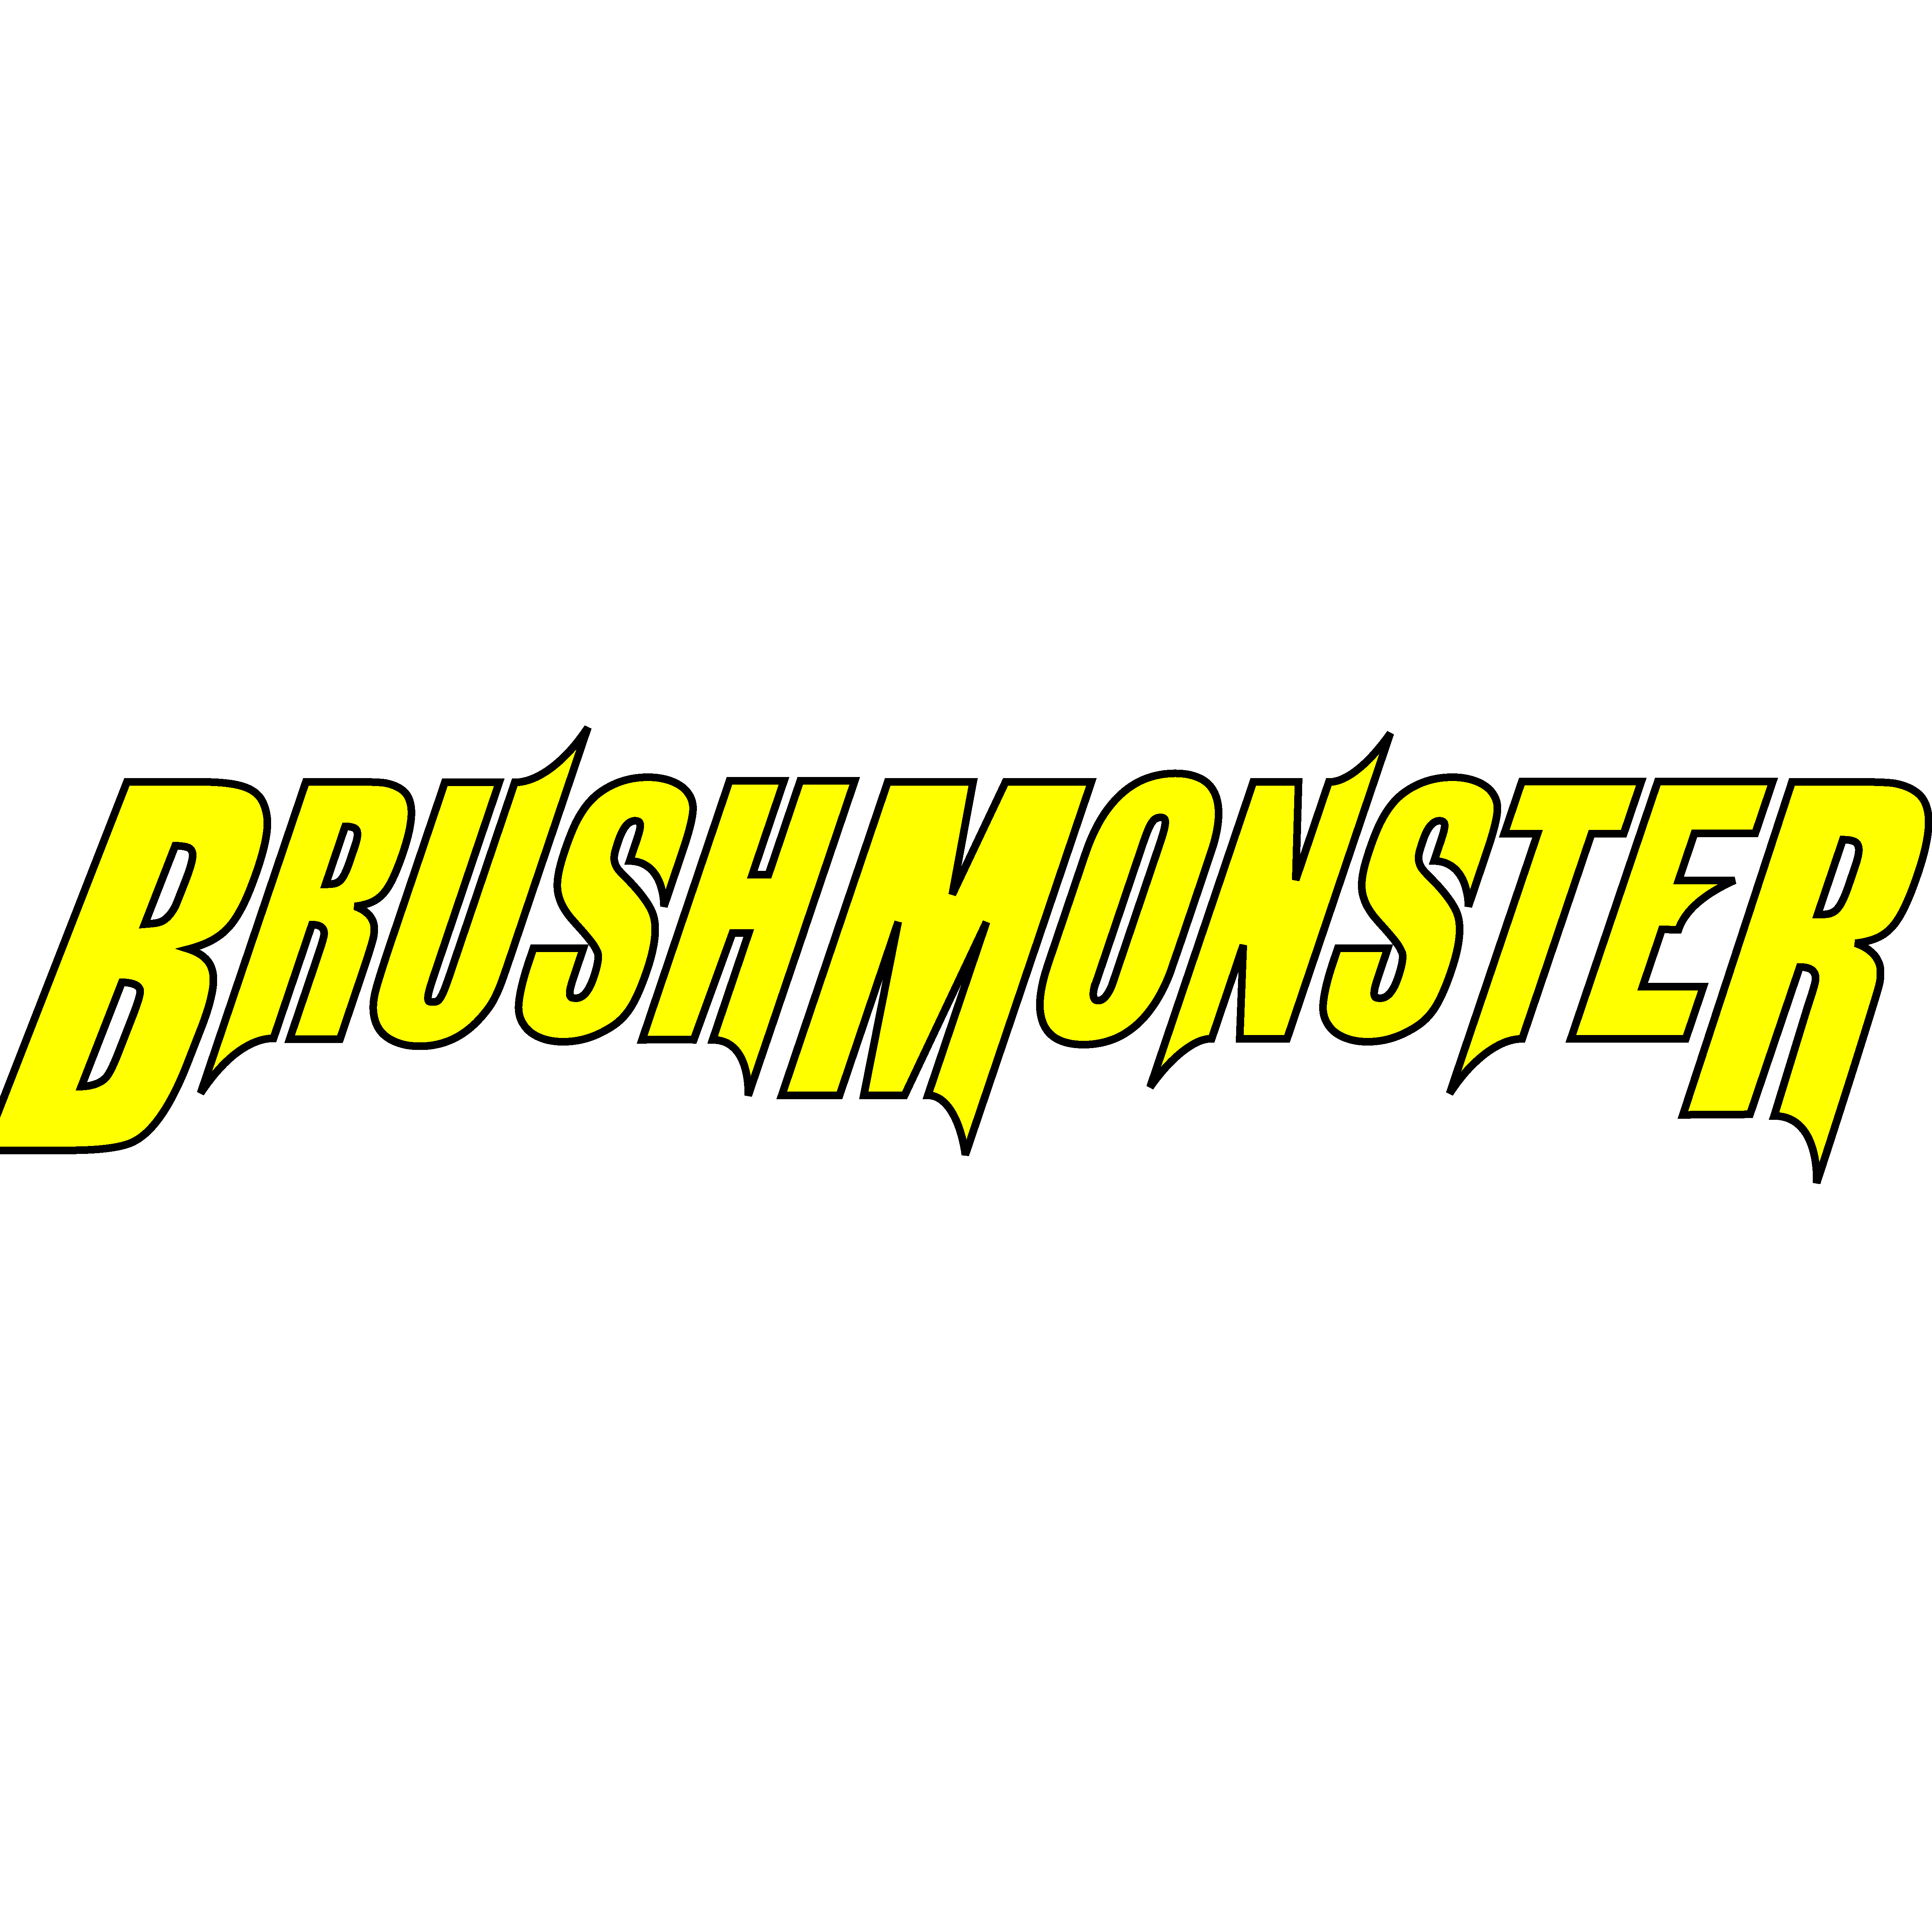 Brushmonster Industrial image 5